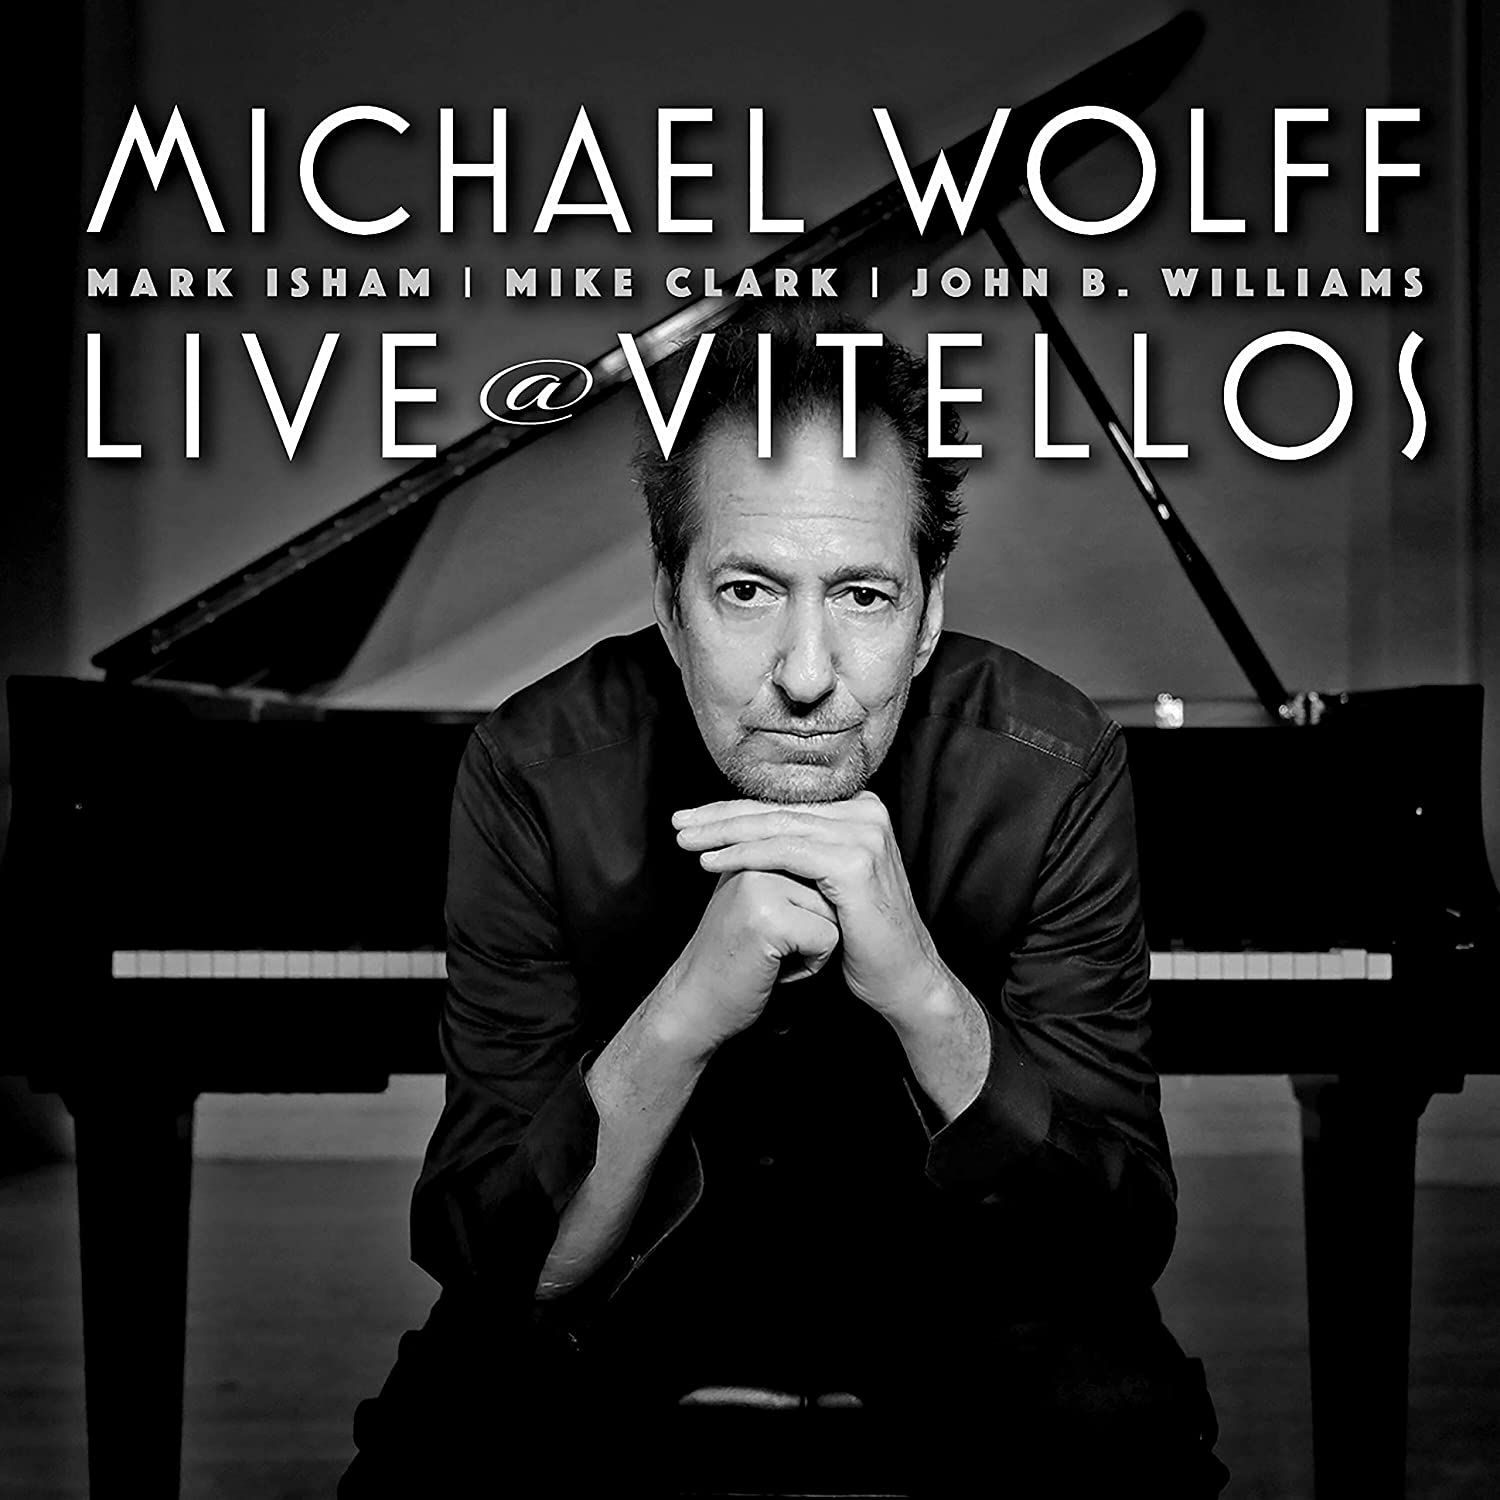 MICHAEL WOLFF - Live At Vitellos cover